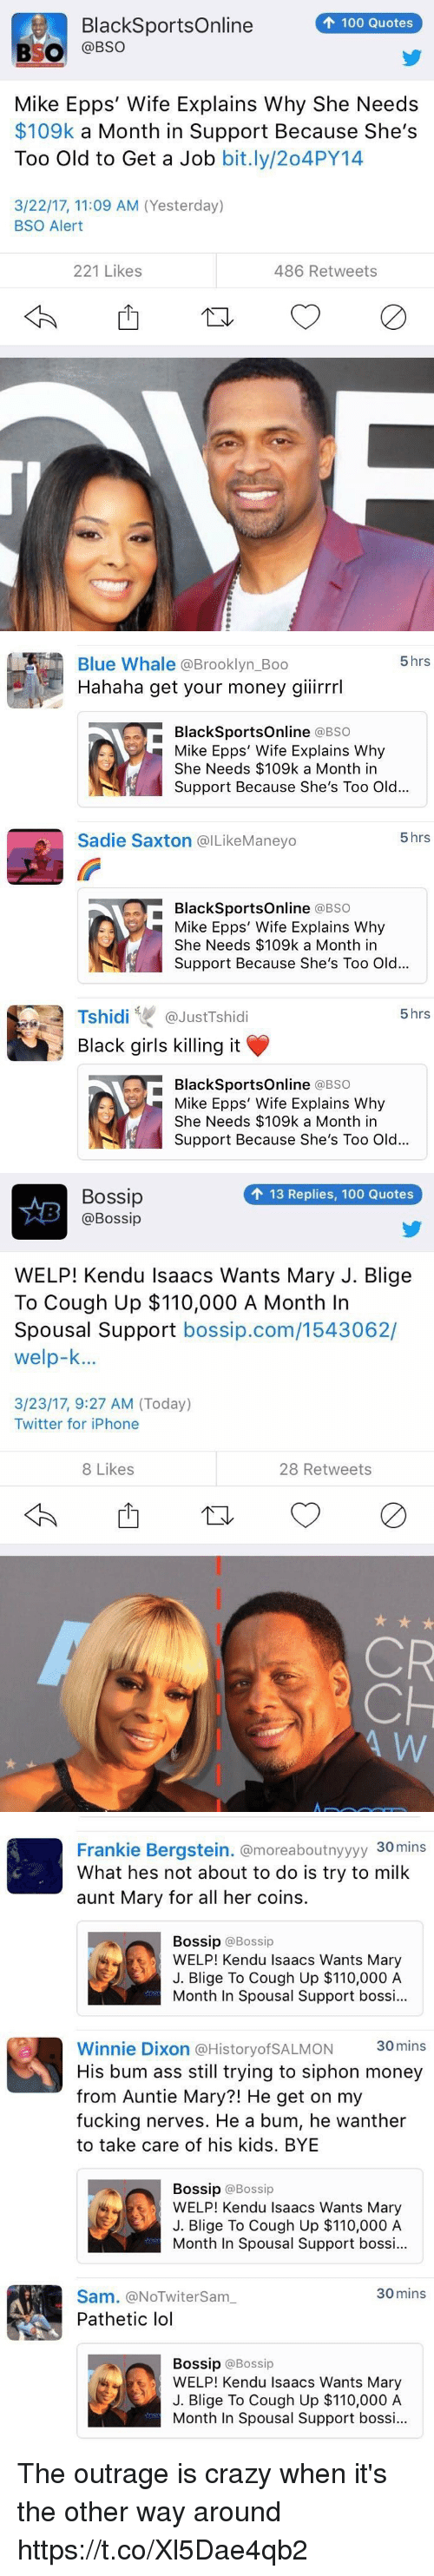 Bossip: 100 Quotes  BlackSportsOnline  BSO  @BSO  Mike Epps' Wife Explains Why She Needs  $109k a Month in Support Because She's  Too Old to Get a Job  bit.ly/204PY14  3/22/17, 11:09 AM (Yesterday)  BSO Alert  221 Likes  486 Retweets   5 hrs  Blue Whale Brooklyn Boo  Hahaha get your money giiirrrl  BlackSportsOnline  (a BSO  Mike Epps' Wife Explains Why  She Needs $109k a Month in  Support Because She's Too Old...  5 hrs  Sadie Saxton @ILikeManeyo  BlackSportsOnline  (a BSO  Mike Epps' Wife Explains Why  She Needs $109k a Month in  Support Because She's Too Old...  Tshidi  GJustTshidi  5 hrs  Black girls killing it  BlackSportsOnline  (a BSO  Mike Epps' Wife Explains Why  She Needs $109k a Month in  Support Because She's Too Old...   Bossip  13 Replies, 100 Quotes  @Bossip  WELP! Kendu Isaacs Wants Mary J. Blige  To Cough Up $110,000 A Month In  Spousal Support  bossip.com/1543062/  welp-k...  3/23/17, 9:27 AM (Today)  Twitter for iPhone  8 Likes  28 Retweets  CR   Frankie Bergstein. @moreaboutnyyyy 30mins  What hes not about to do is try to milk  aunt Mary for all her coins.  Bossip  @Bossip  WELP! Kendu Isaacs Wants Mary  J. Blige To Cough Up $110,000 A  Month In Spousal Support bossi...  Winnie Dixon a HistoryofSALMON 30mins  His bum ass still trying to siphon money  from Auntie Mary?! He get on my  fucking nerves. He a bum, he wanther  to take care of his kids. BYE  Bossip  @Bossip  WELP! Kendu Isaacs Wants Mary  J. Blige To cough up $110,000 A  Month In Spousal Support bossi...  30 mins  Sam. (aNOTwitersam  Pathetic lol  Bossip @Bossip  WELP! Kendu Isaacs Wants Mary  J. Blige To Cough Up $110,000 A  Month In Spousal Support bossi... The outrage is crazy when it's the other way around https://t.co/Xl5Dae4qb2